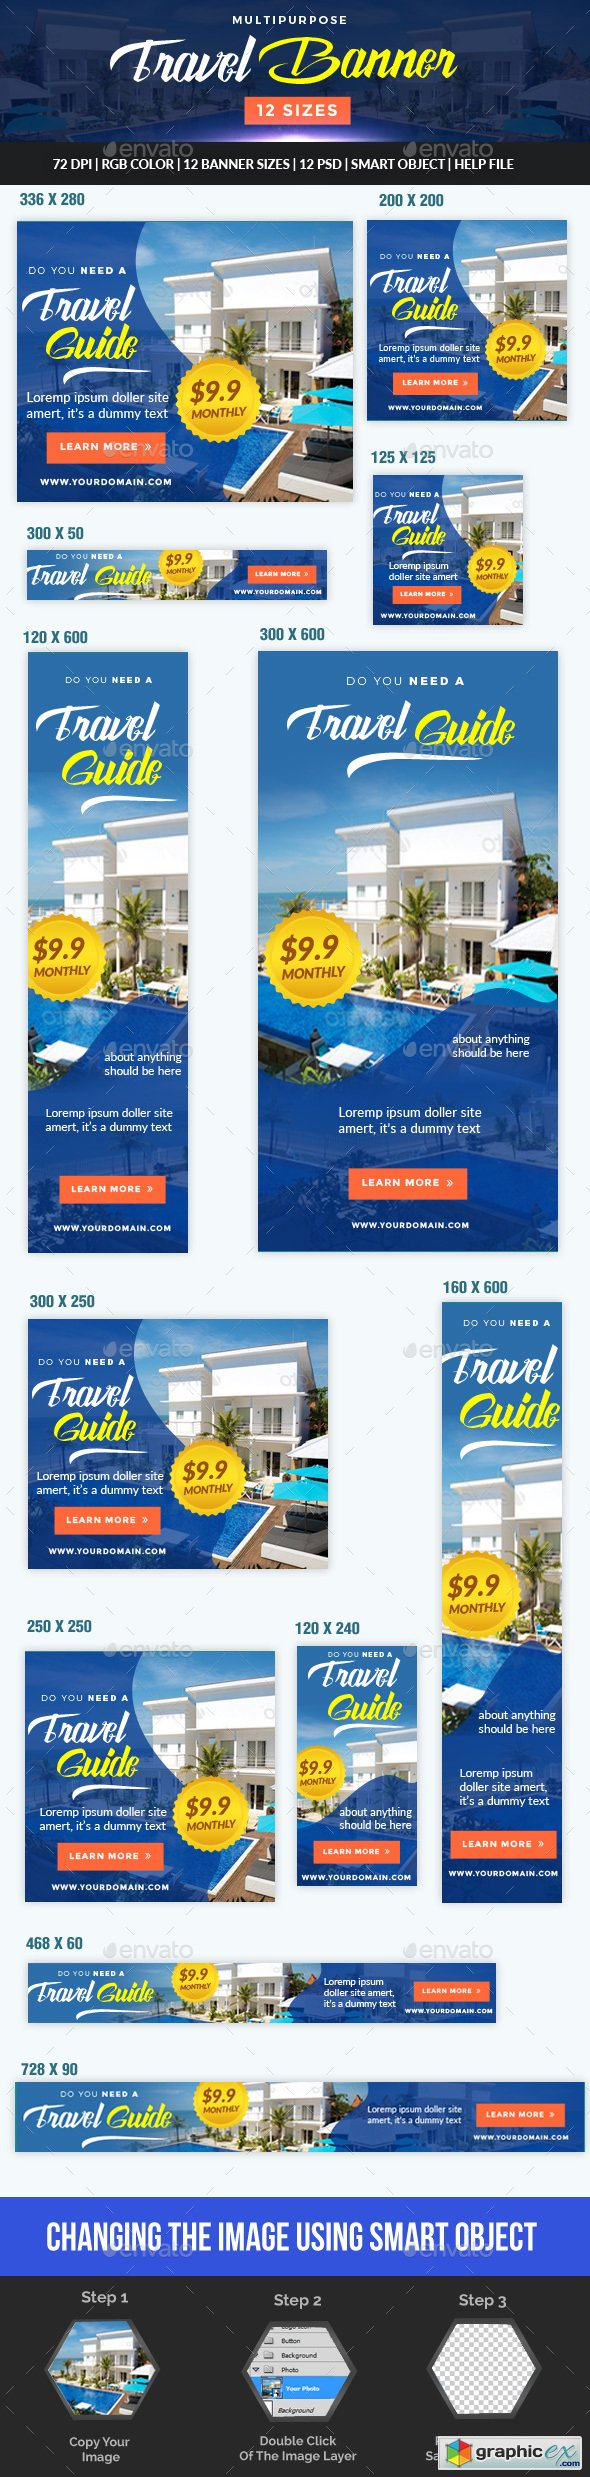 Multipurpose Travel and Hotel Banner